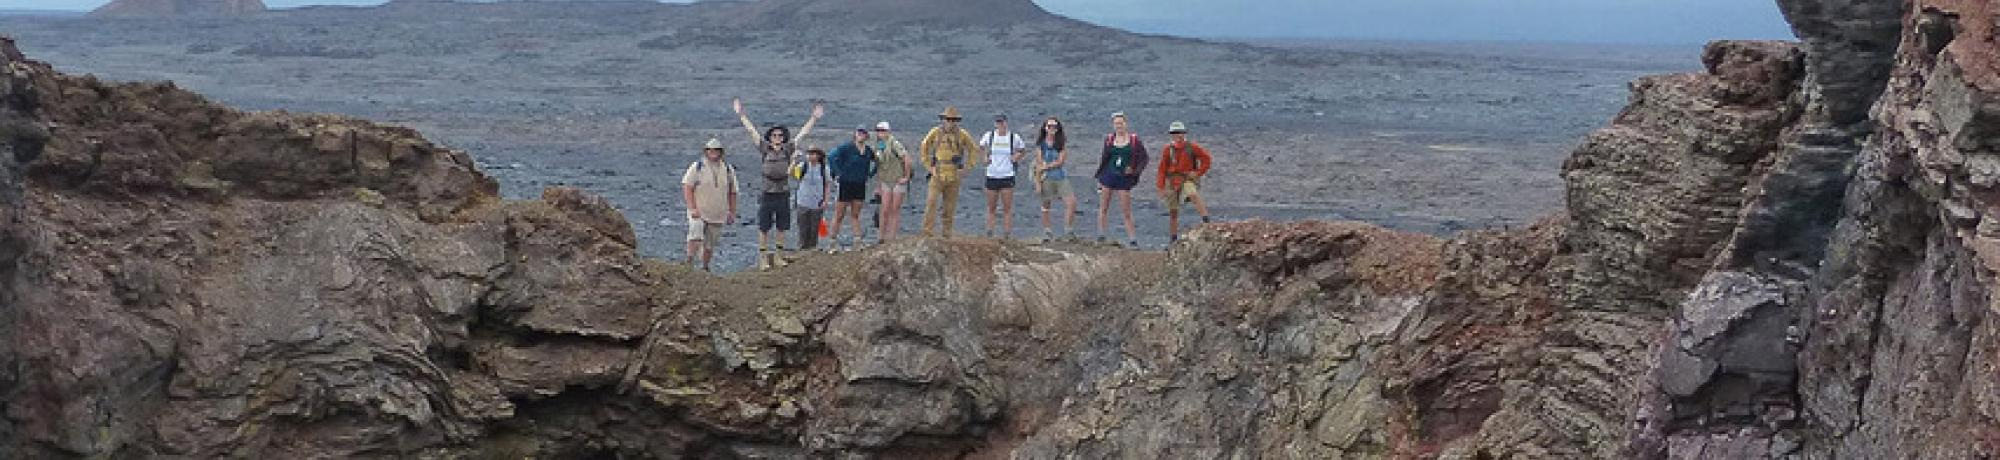 Geology Class on Volcano in Hawaii